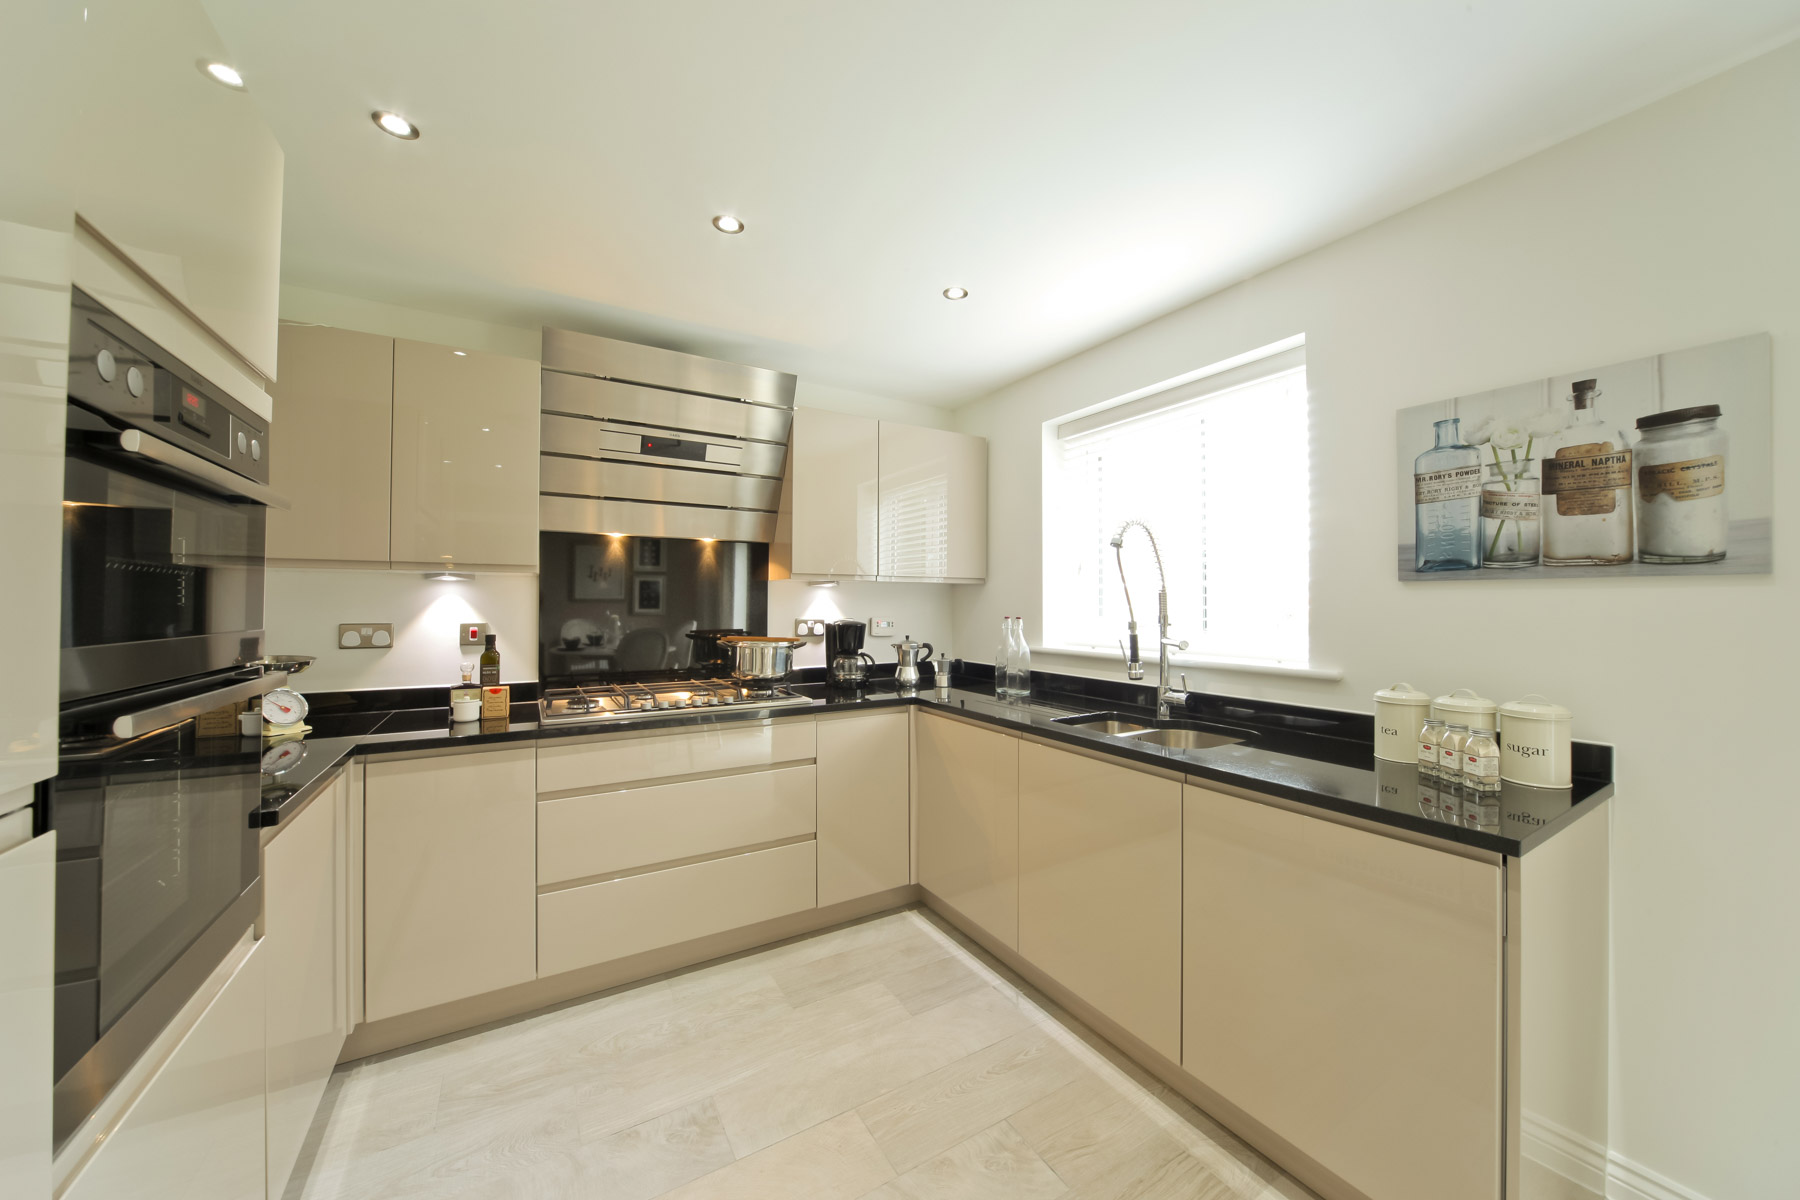 The eynsham at albion lock sandbach taylor wimpey for Perfect kitchen bramley